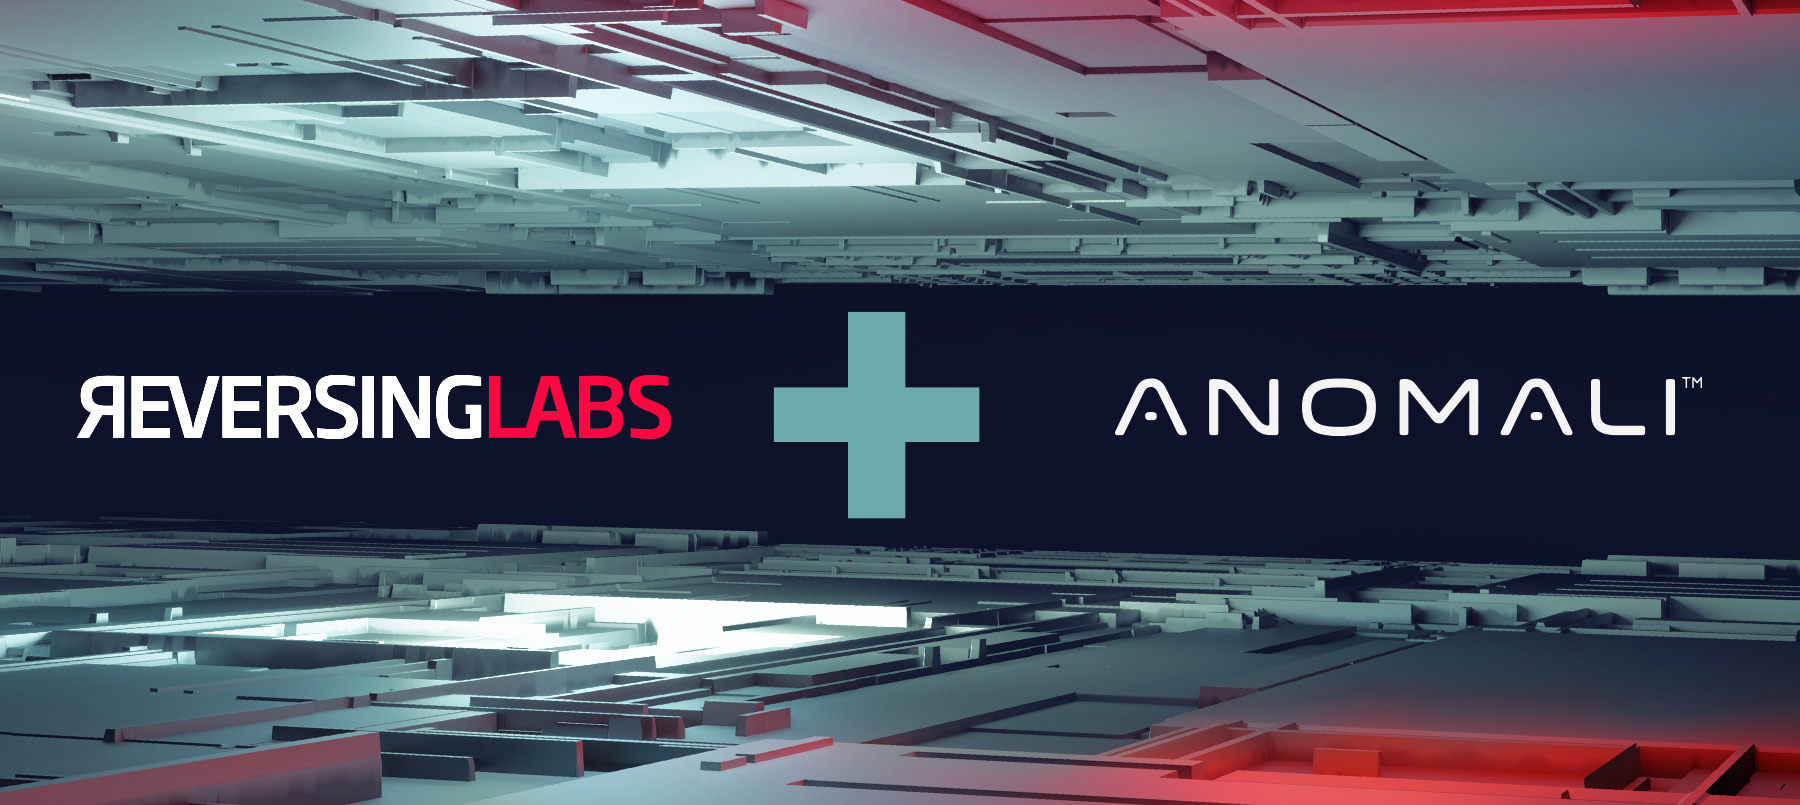 ReversingLabs Partners with Anomali